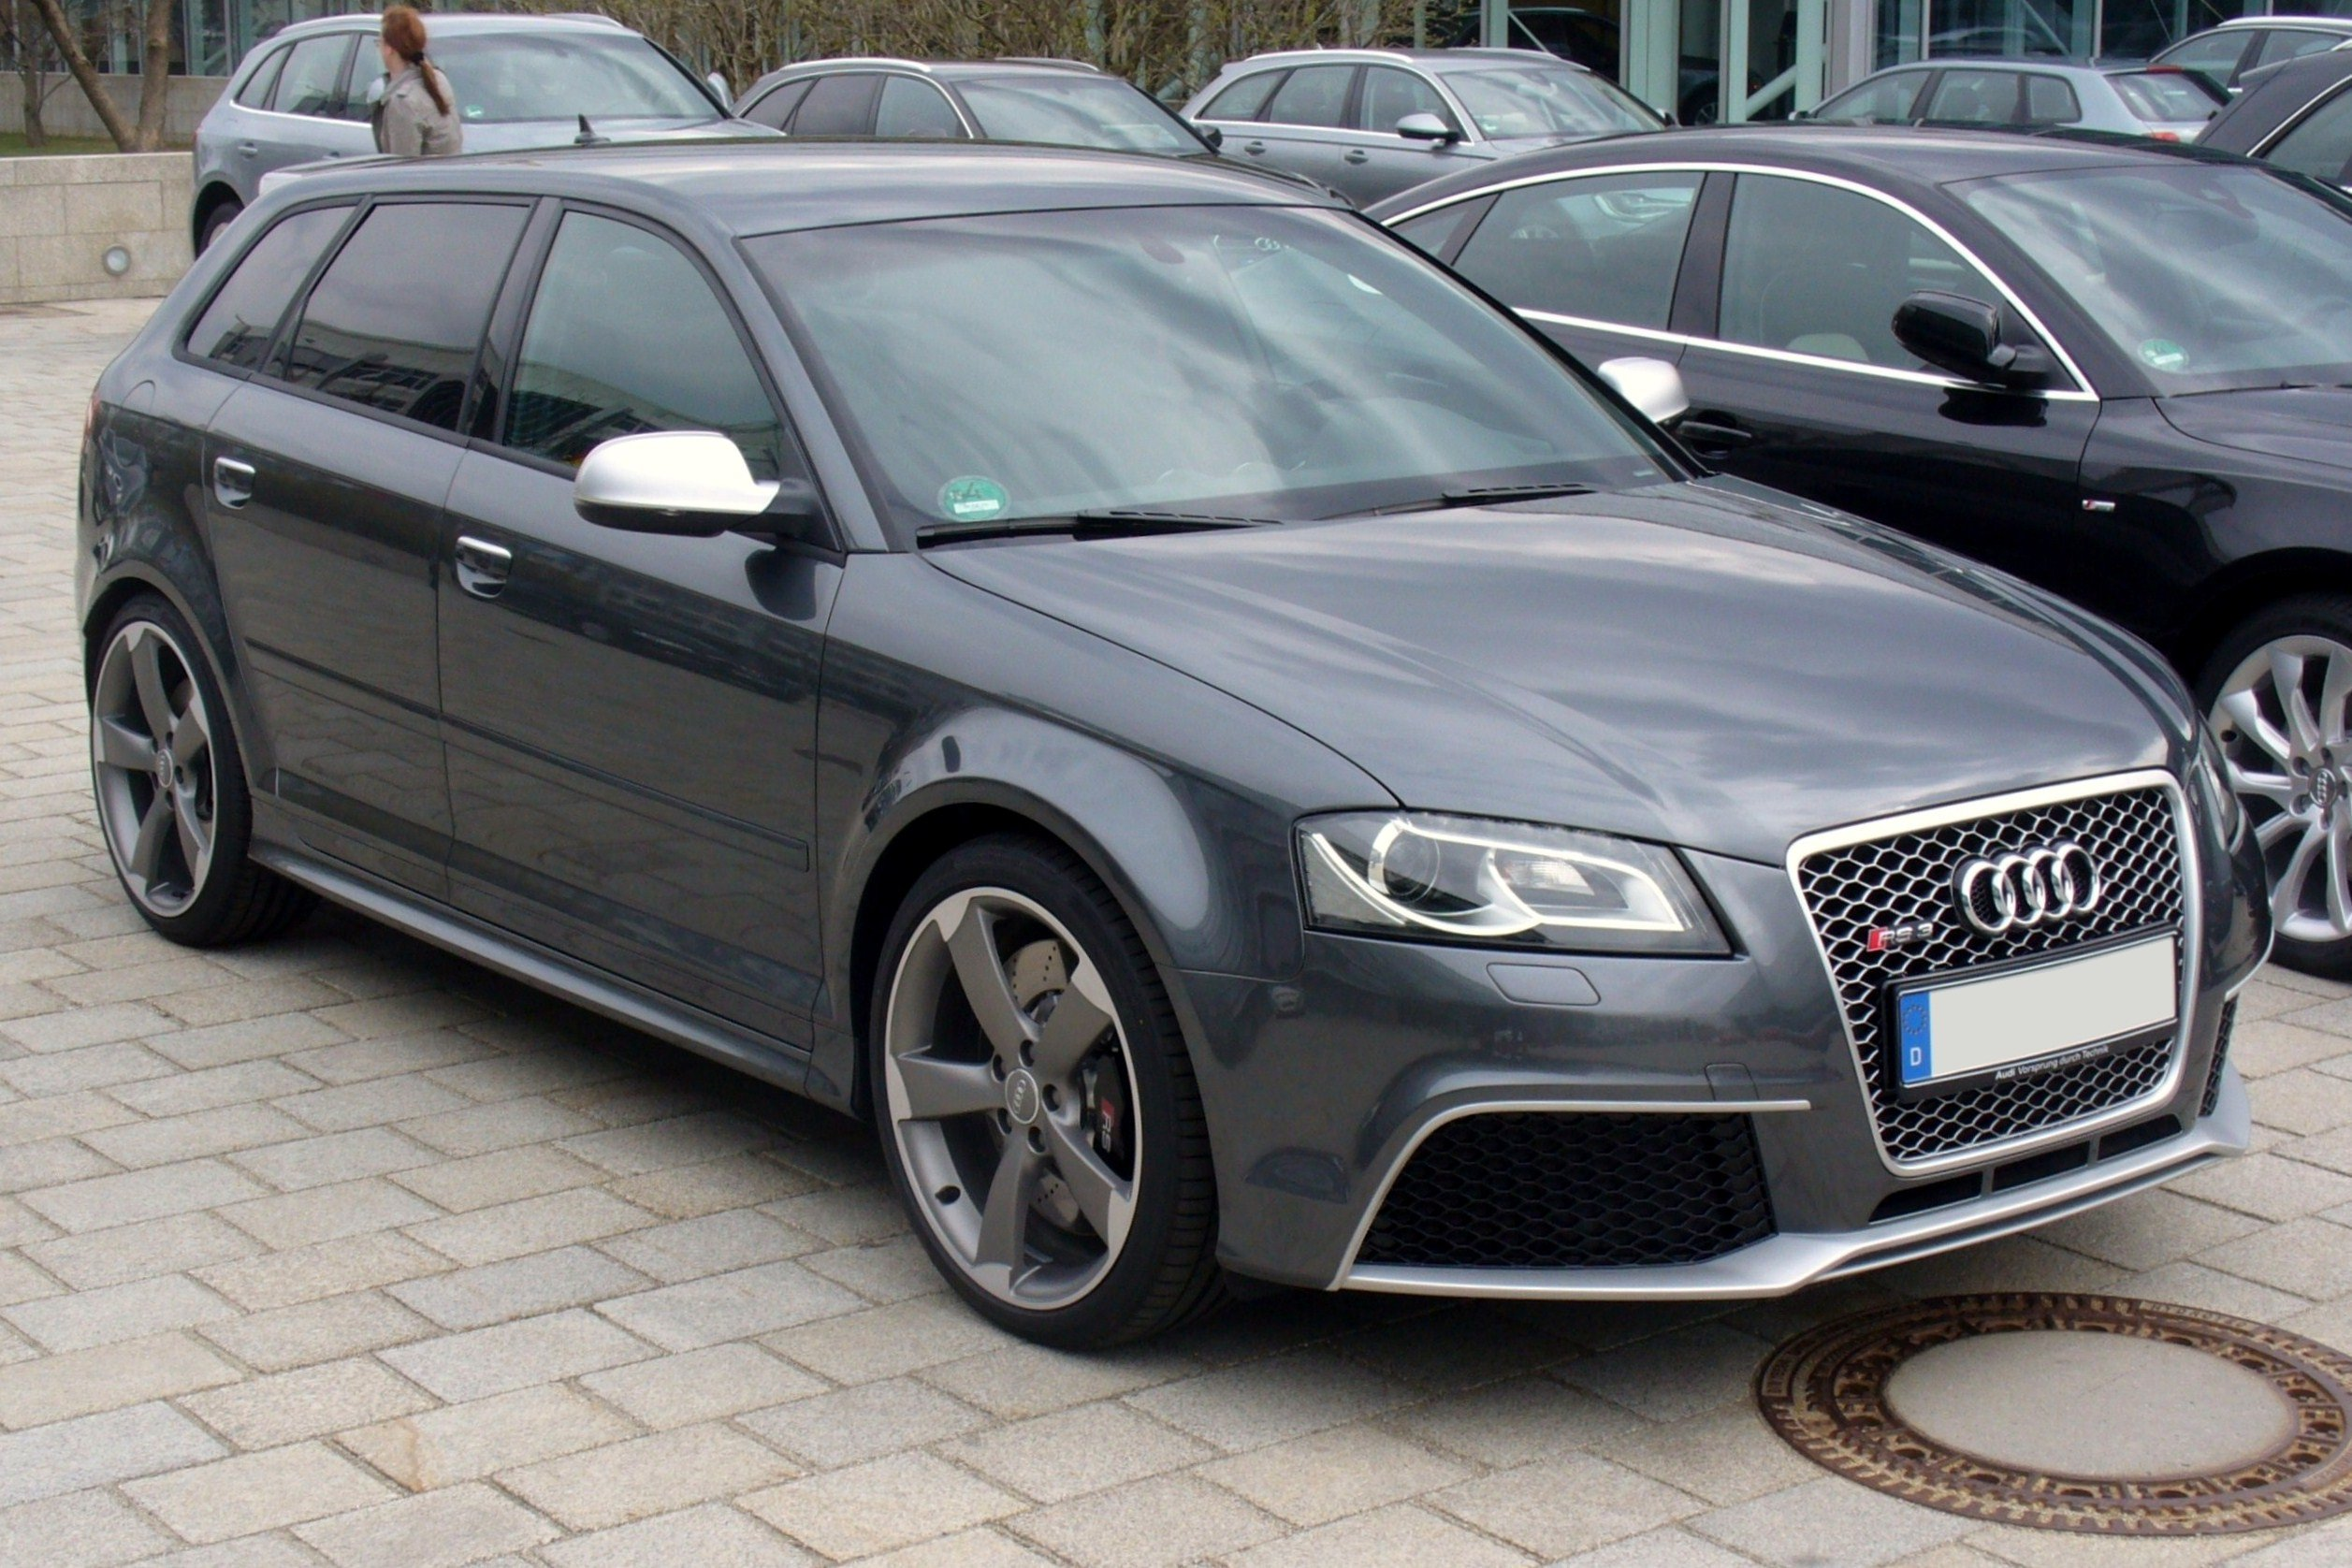 2005 Audi A3 sportback (8p) – pictures, information and ...